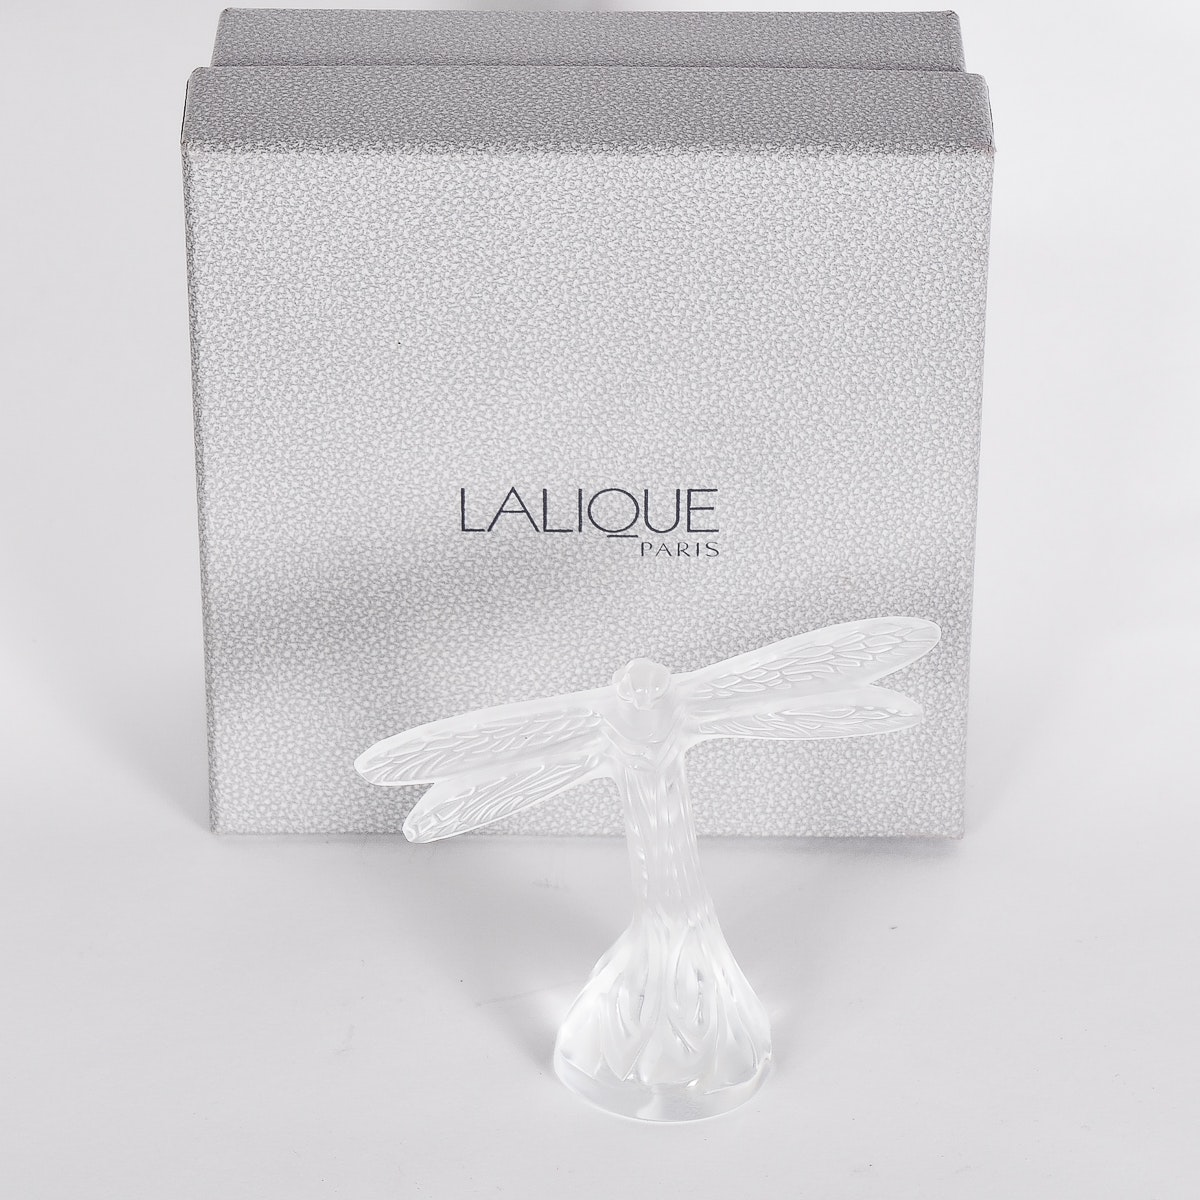 Lalique Crystal Dragonfly Figurine